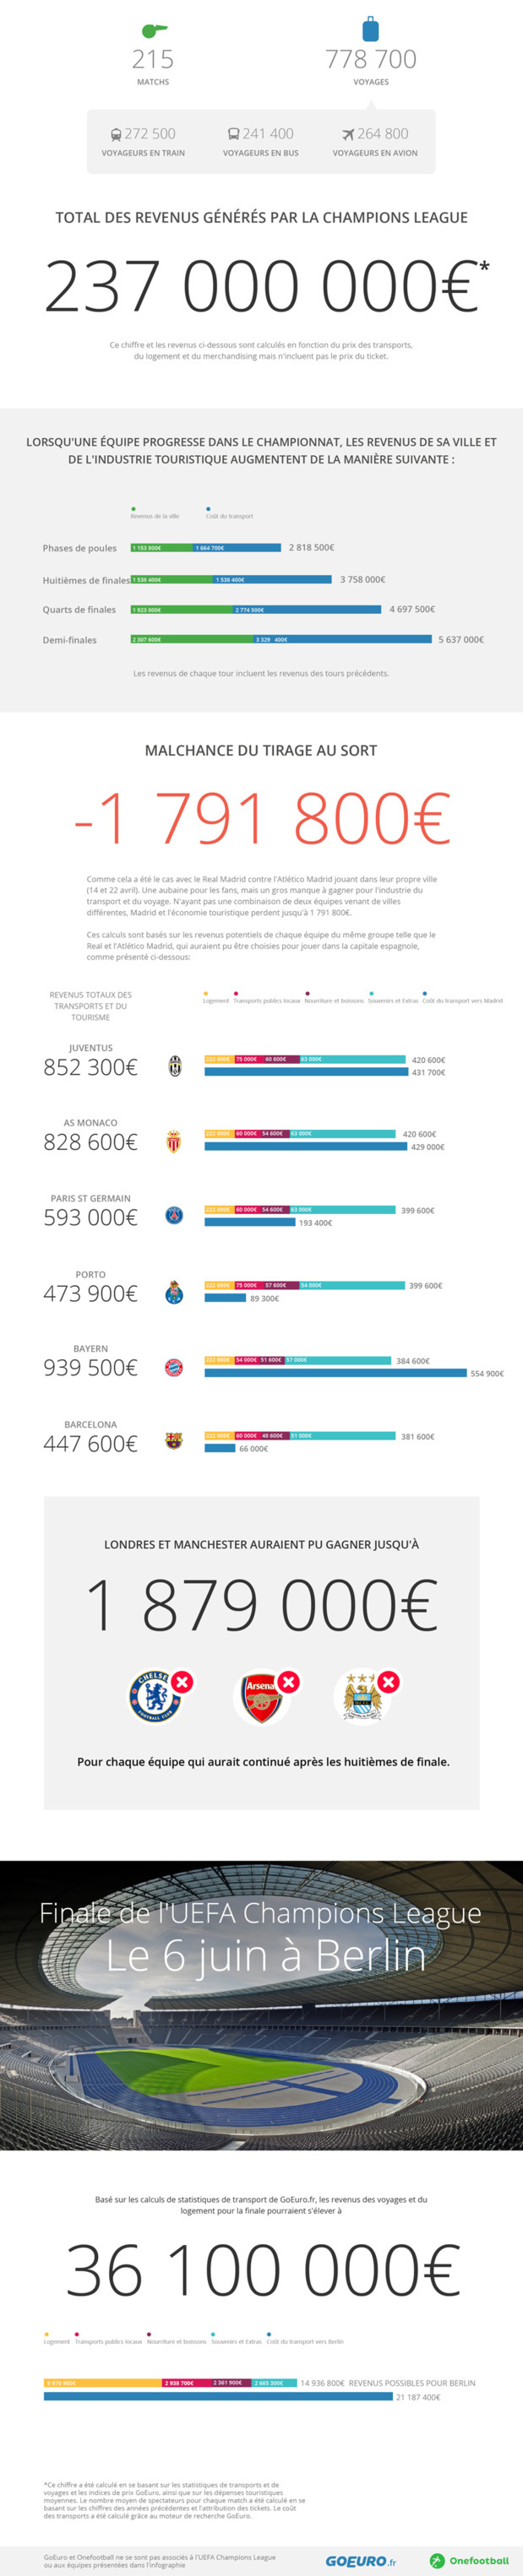 Football: The Champions League generates €237 million of touristic revenues